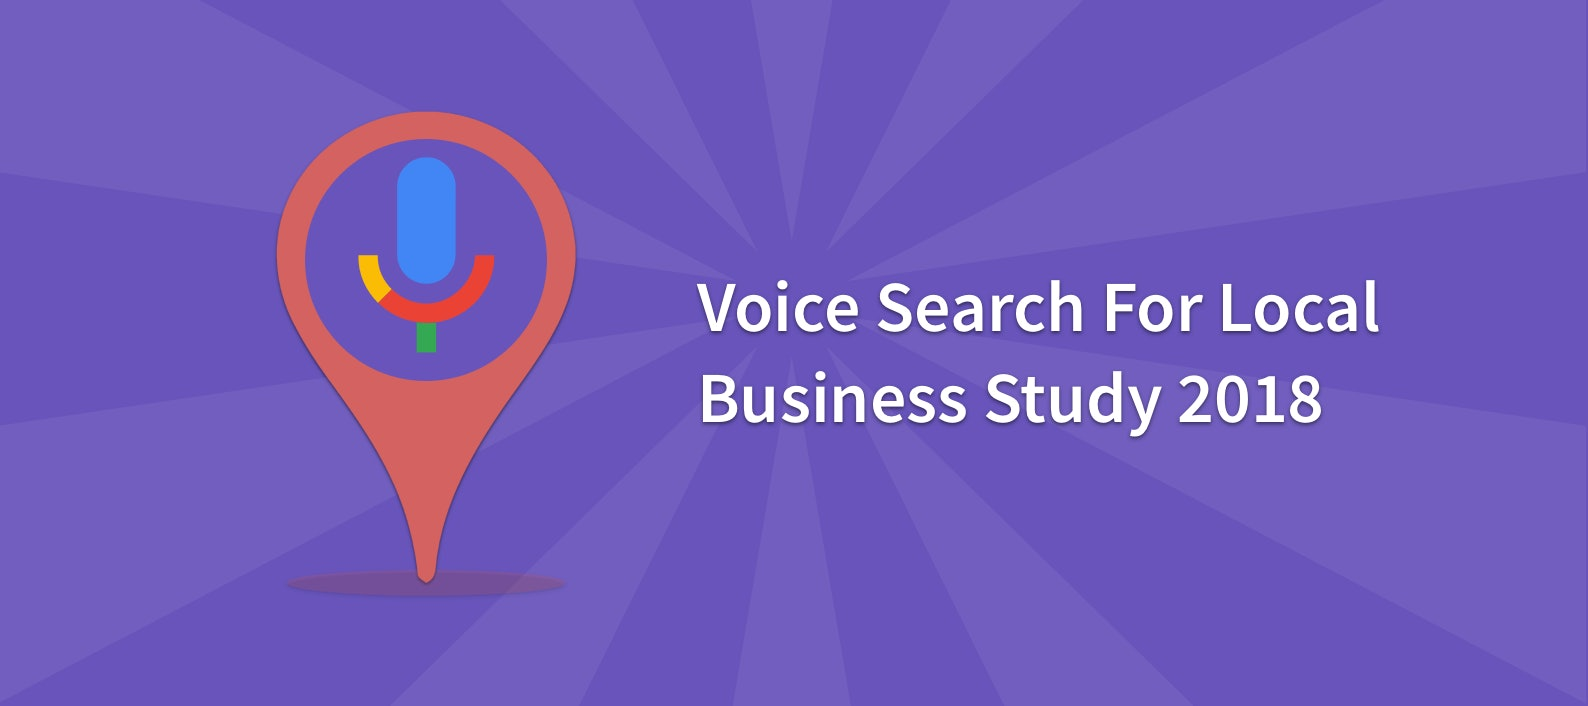 Voice Search for Local Business Study